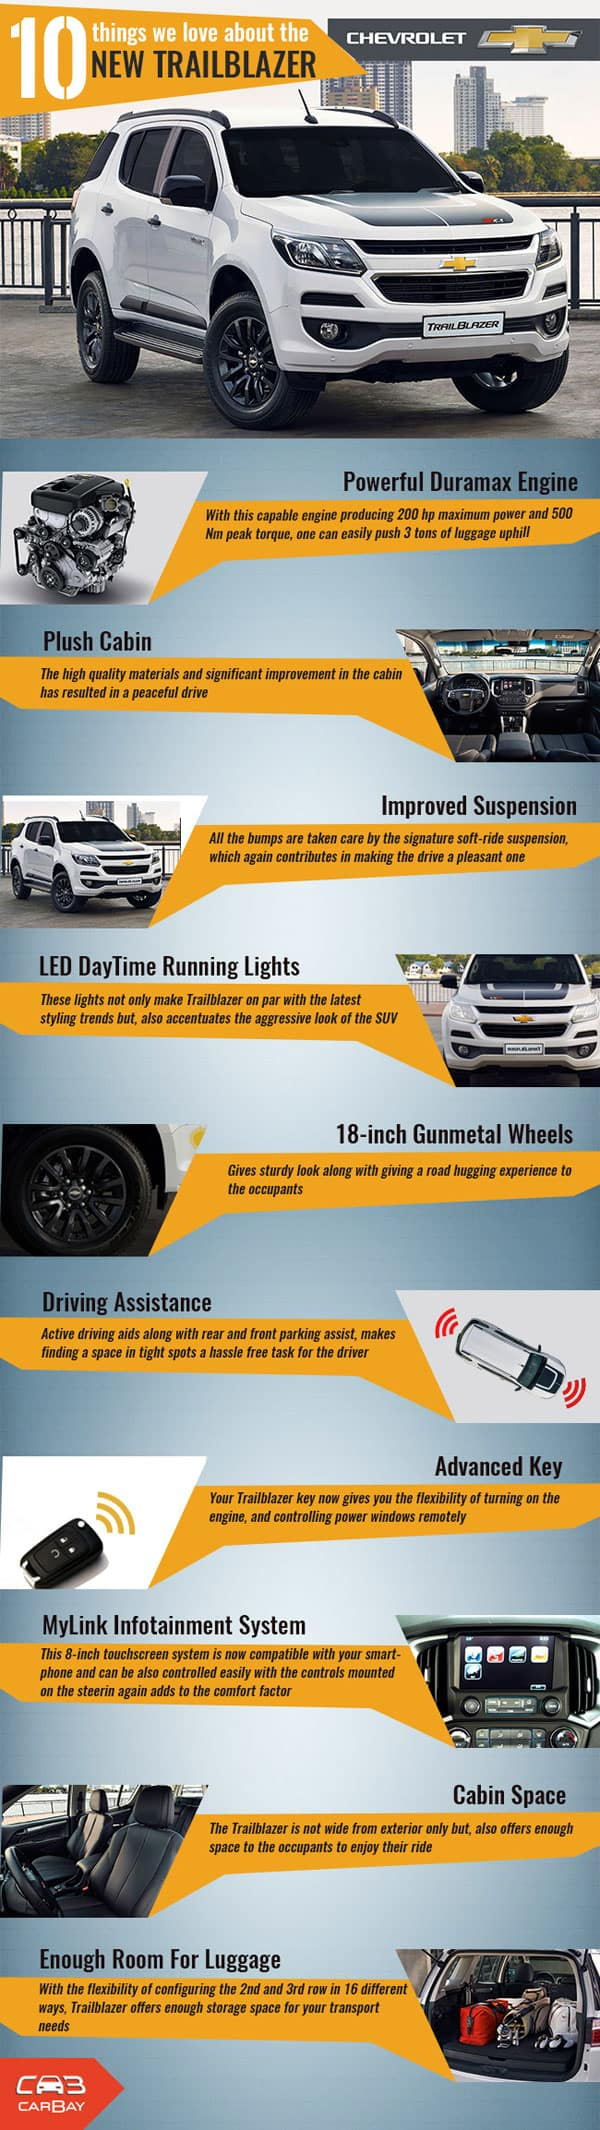 Chevy Trailblazers Highlights Infographic